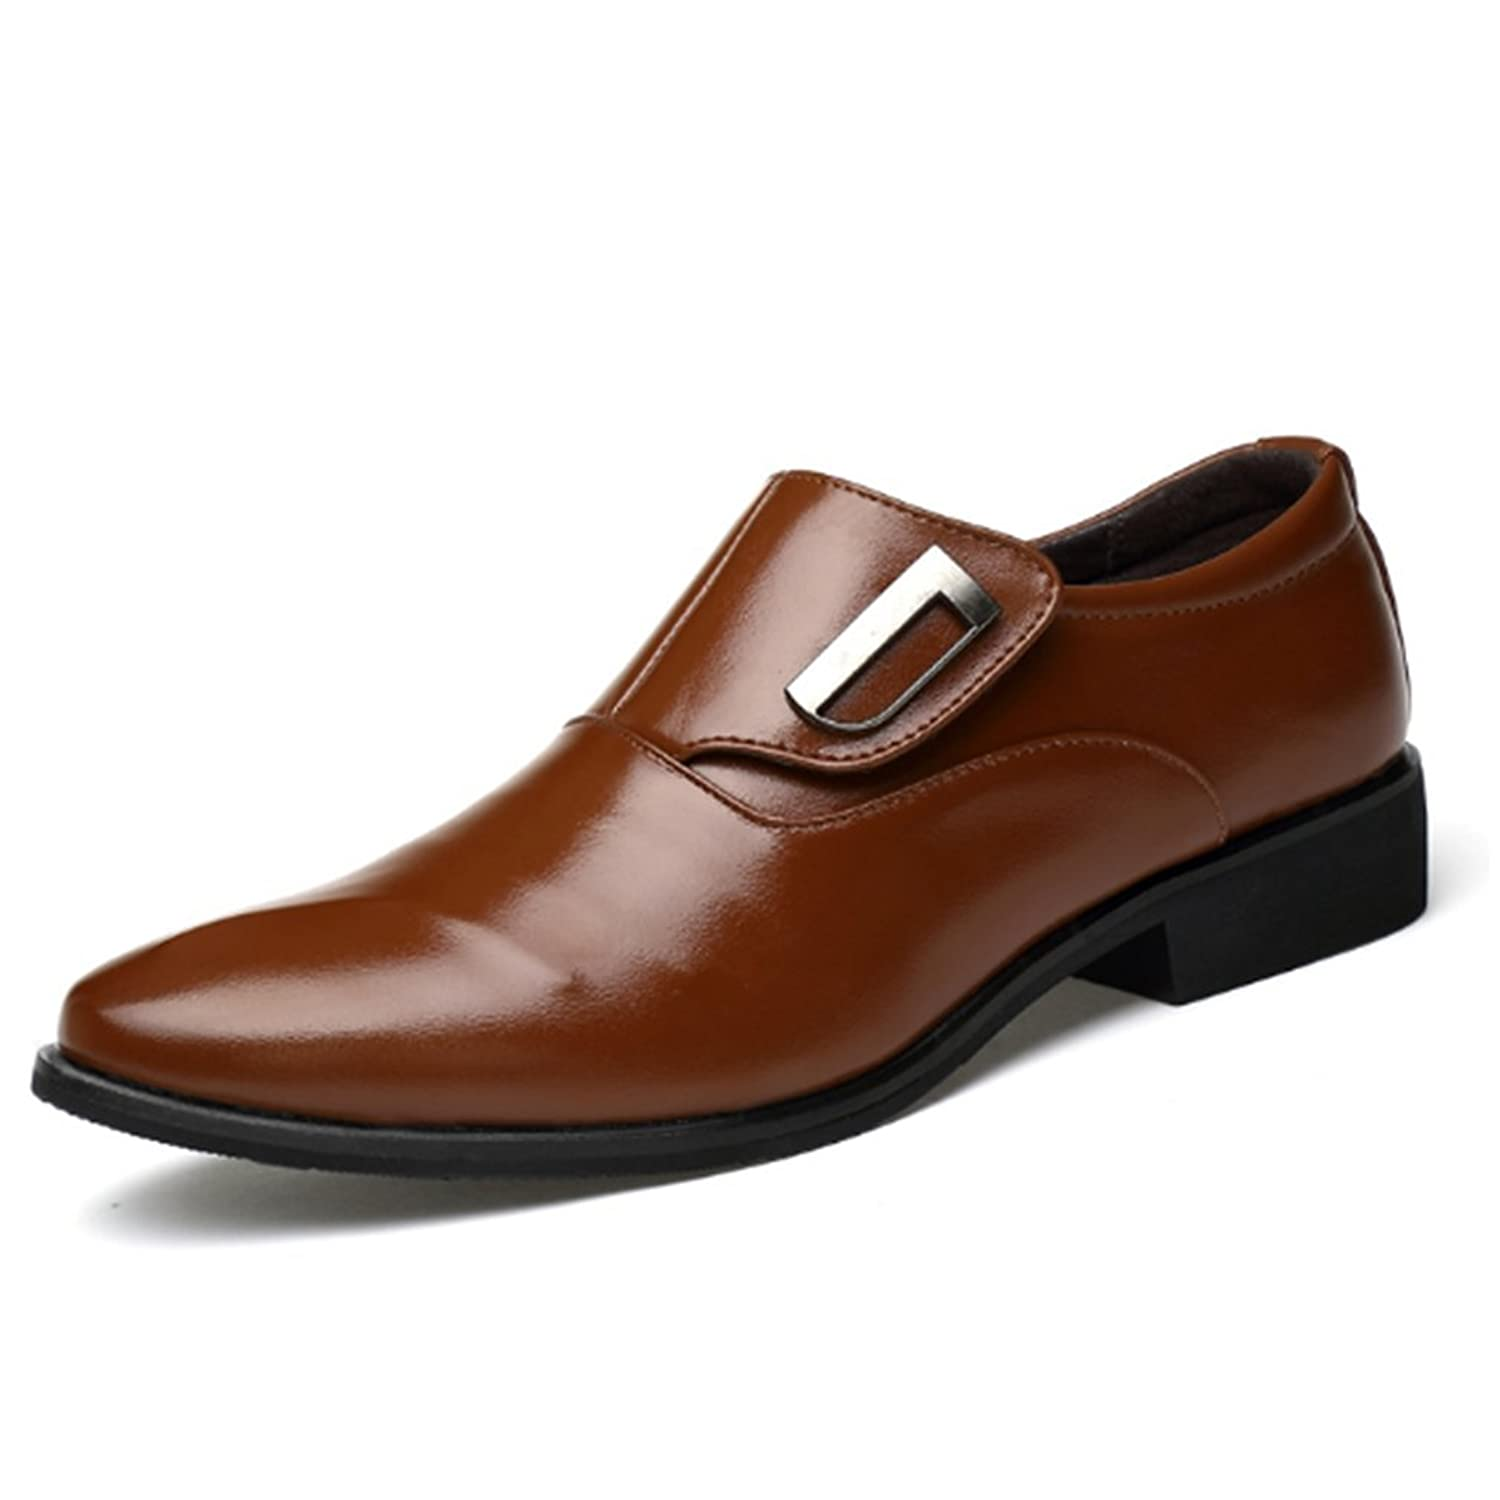 1960s Style Men's Clothing, 70s Men's Fashion Seakee Mens Business Slip-on Dress Shoes Semi-formal Oxford $25.99 AT vintagedancer.com